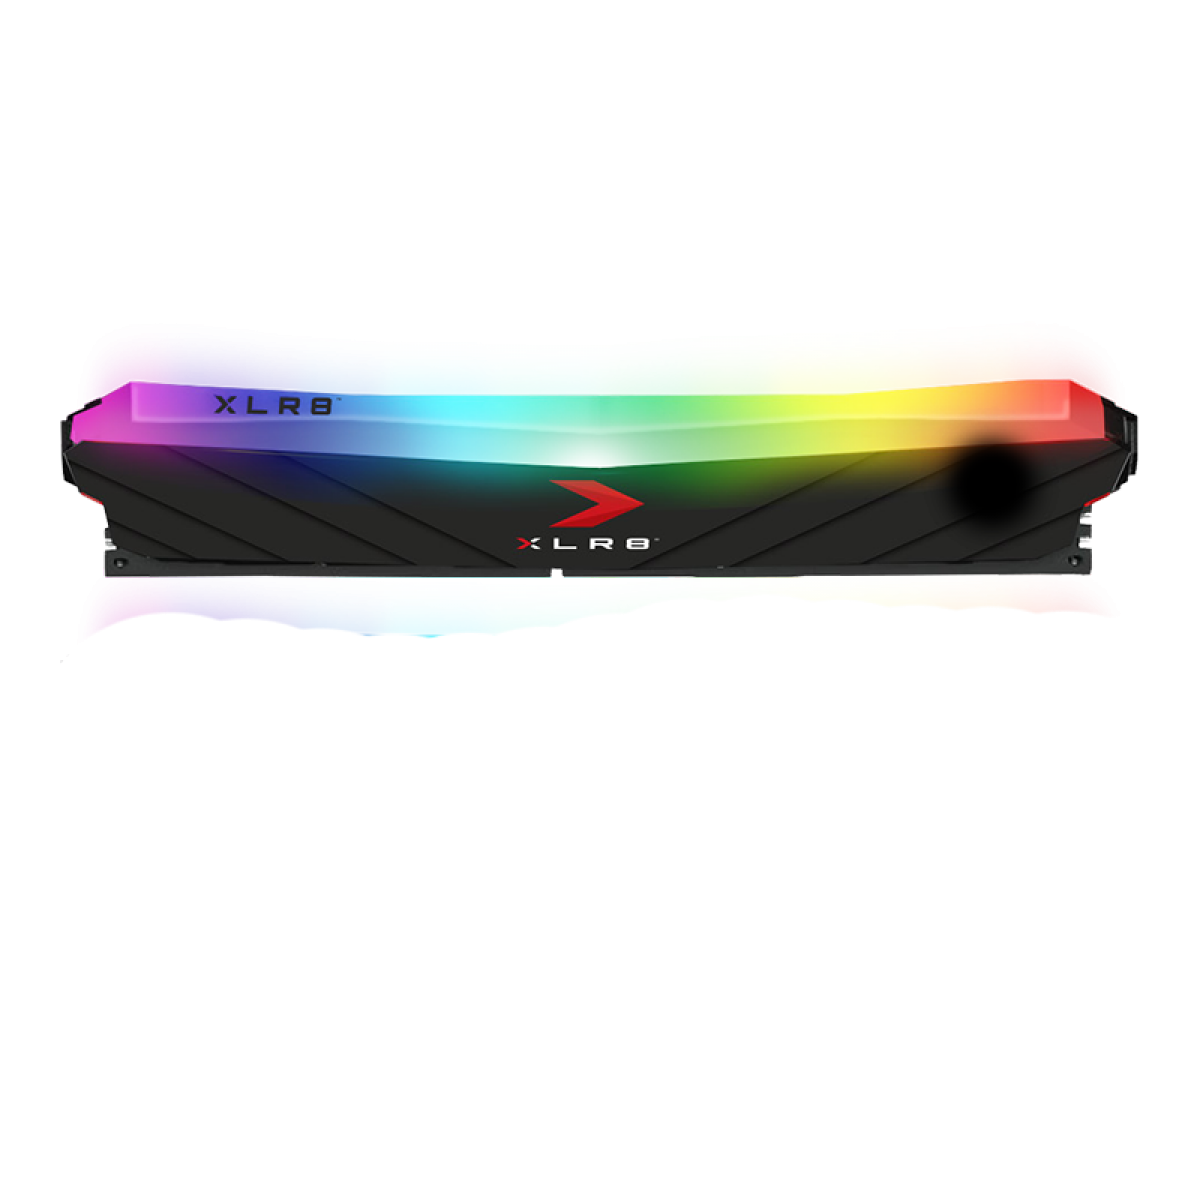 Memória DDR4 PNY XLR8 RGB Gaming, 8GB, 3200MHZ, MD8GD4320016XRGB